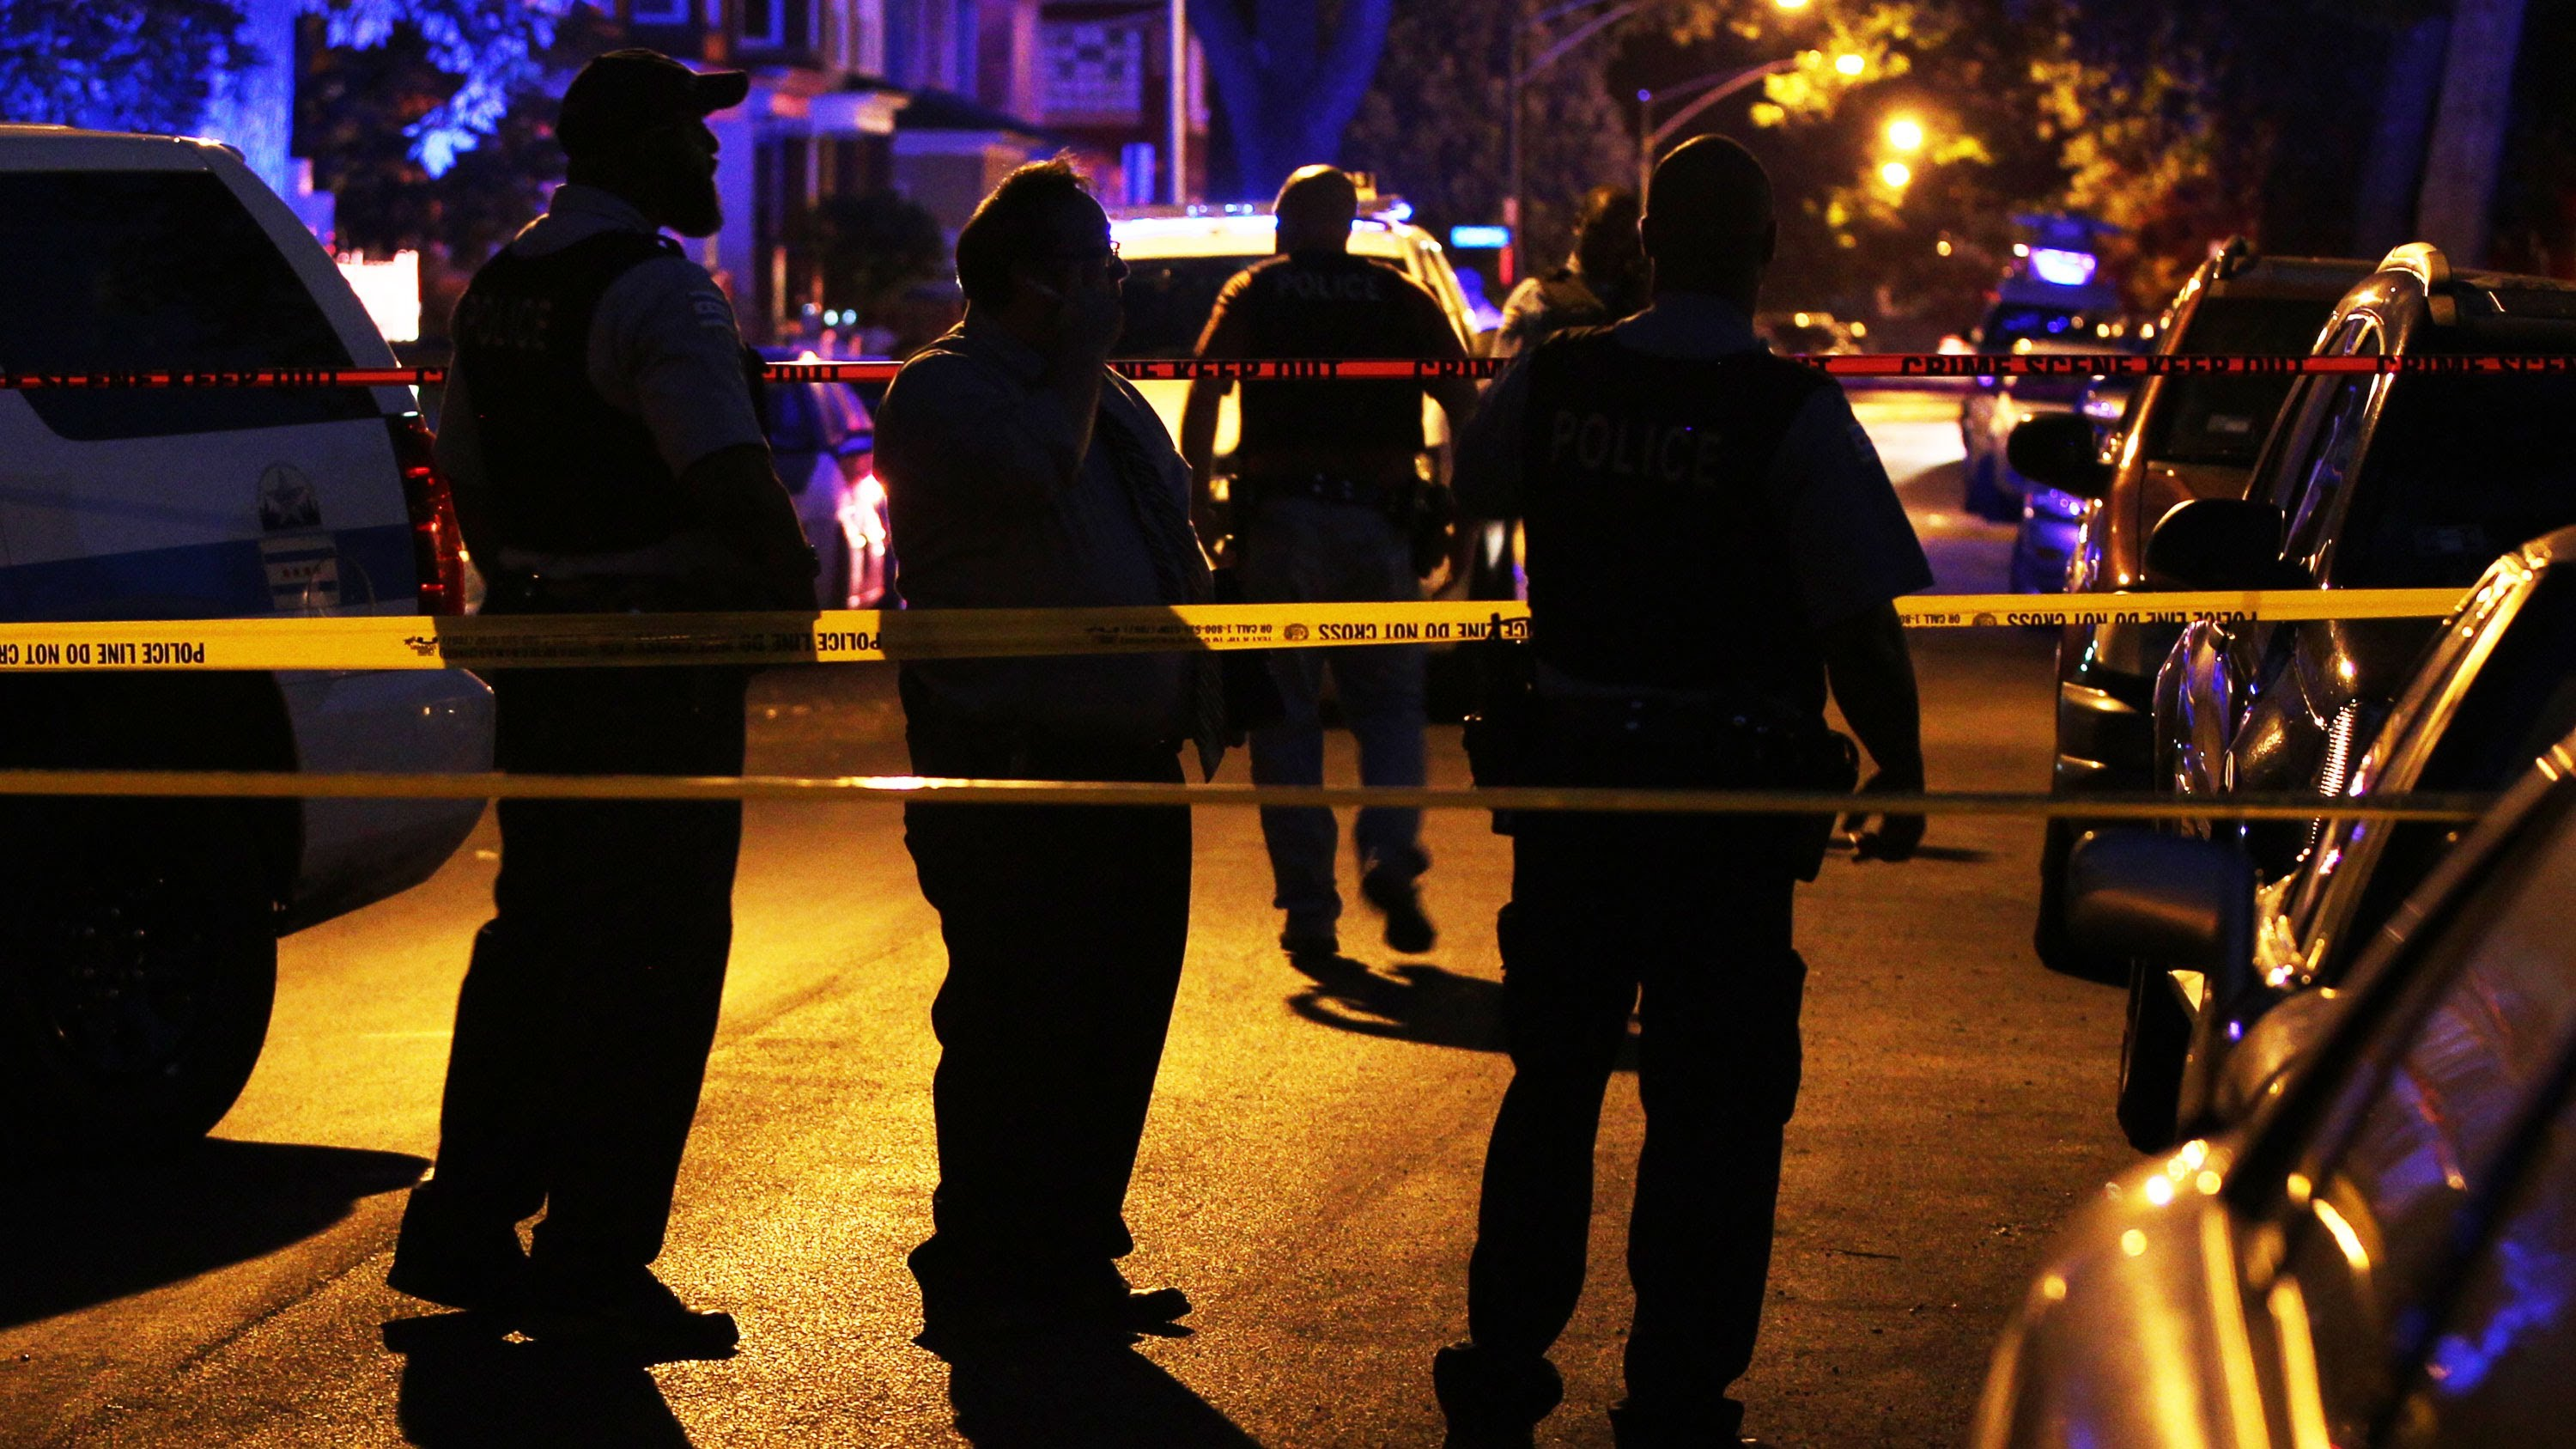 chic - Six Dead, At Least 15 Wounded In Chicago Shootings Over Weekend